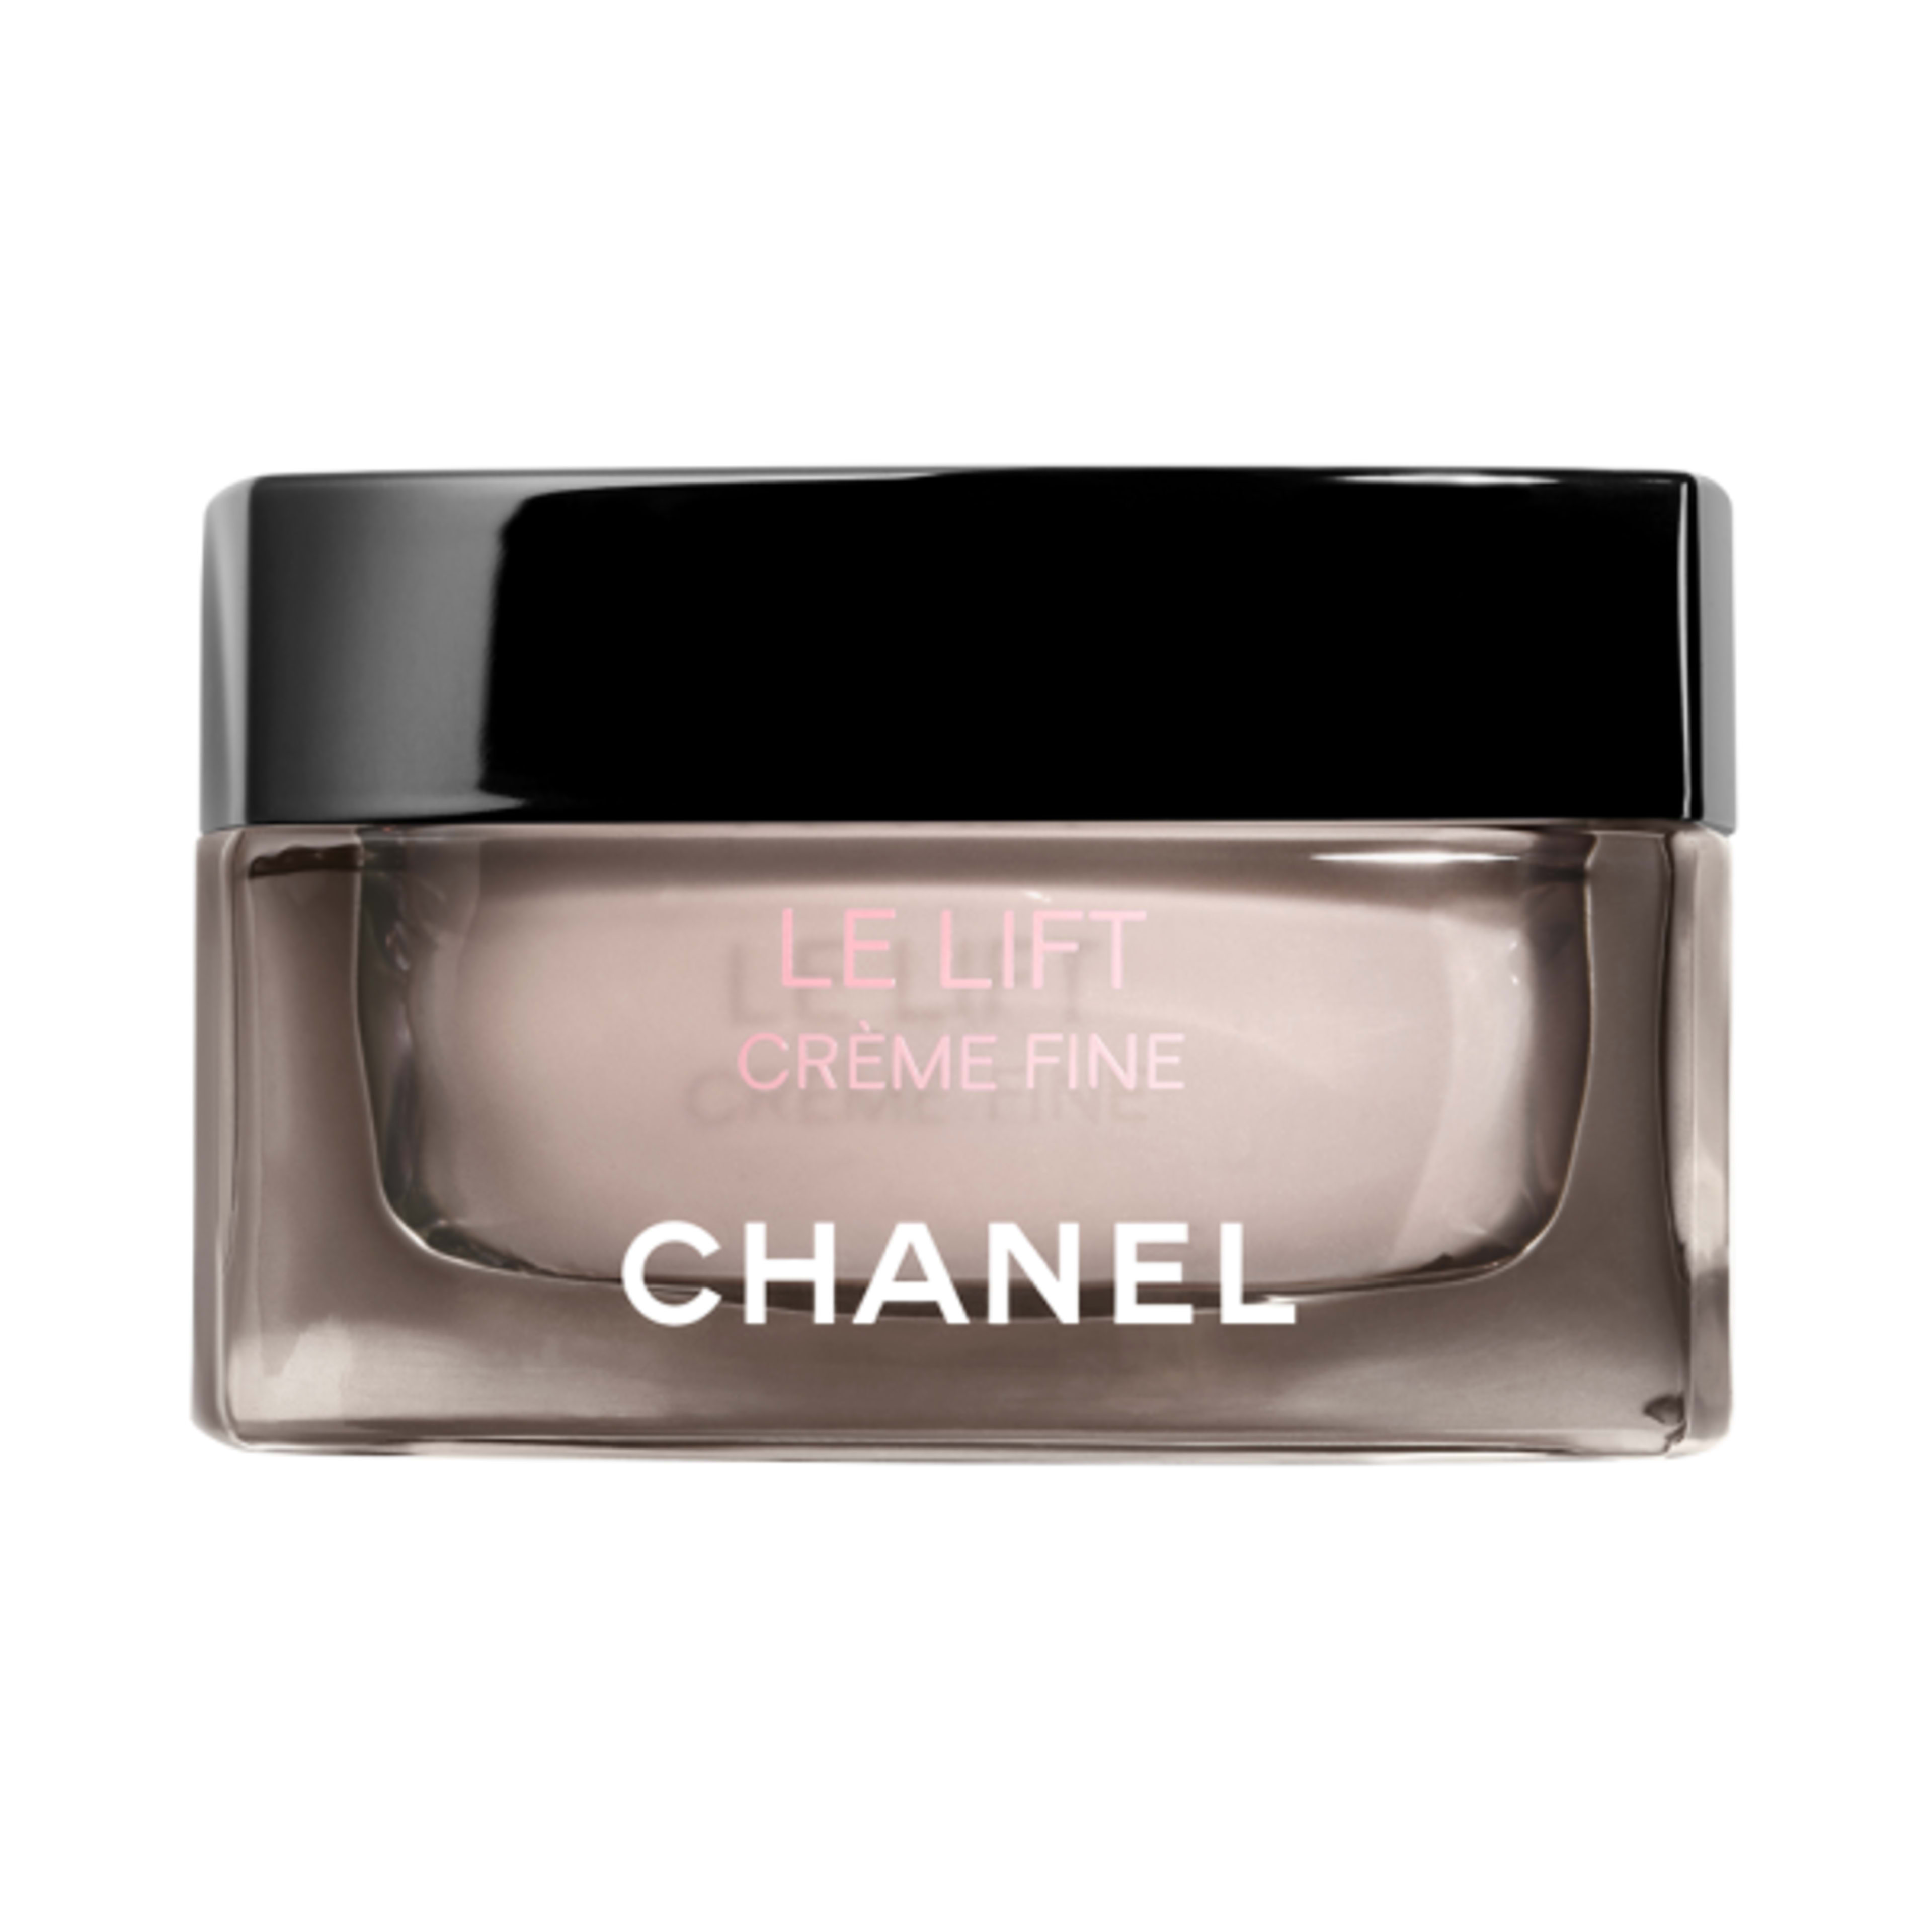 Chanel Le Lift Creme Fine SMOOTHING AND FIRMING Botanical Alfalfa Concentrate 50 ml